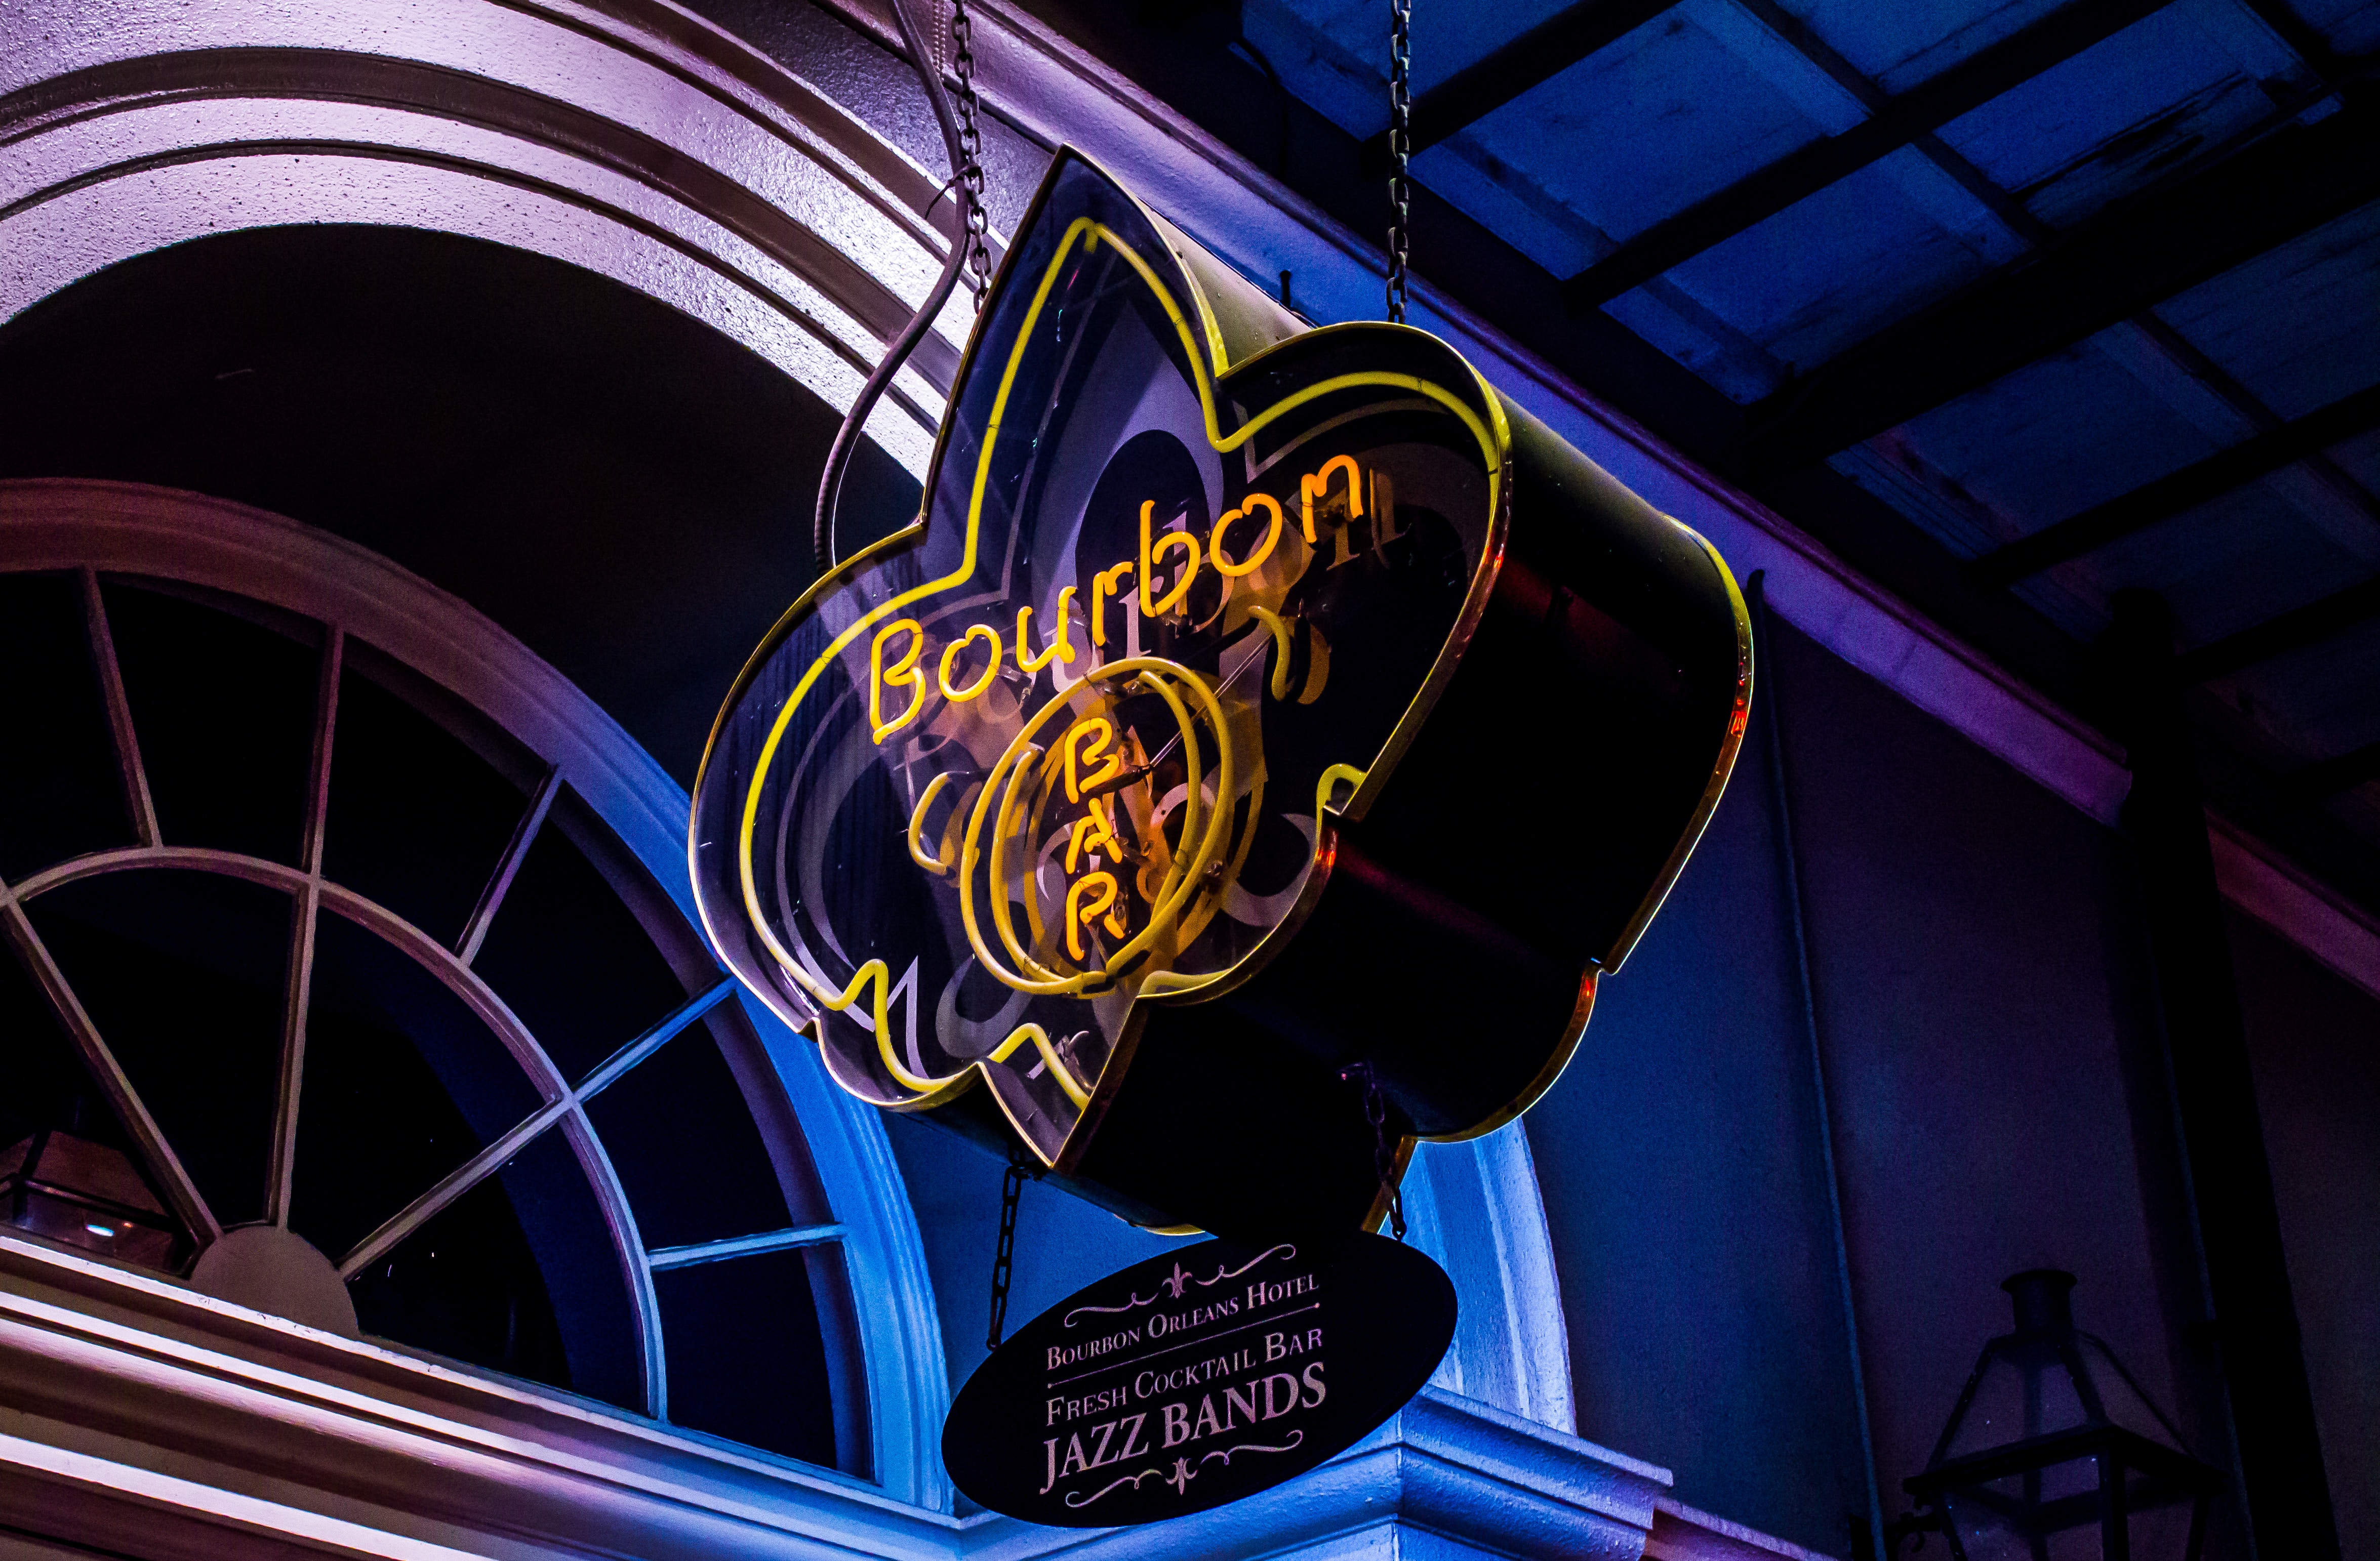 Bourbon Bar sign from New Orleans